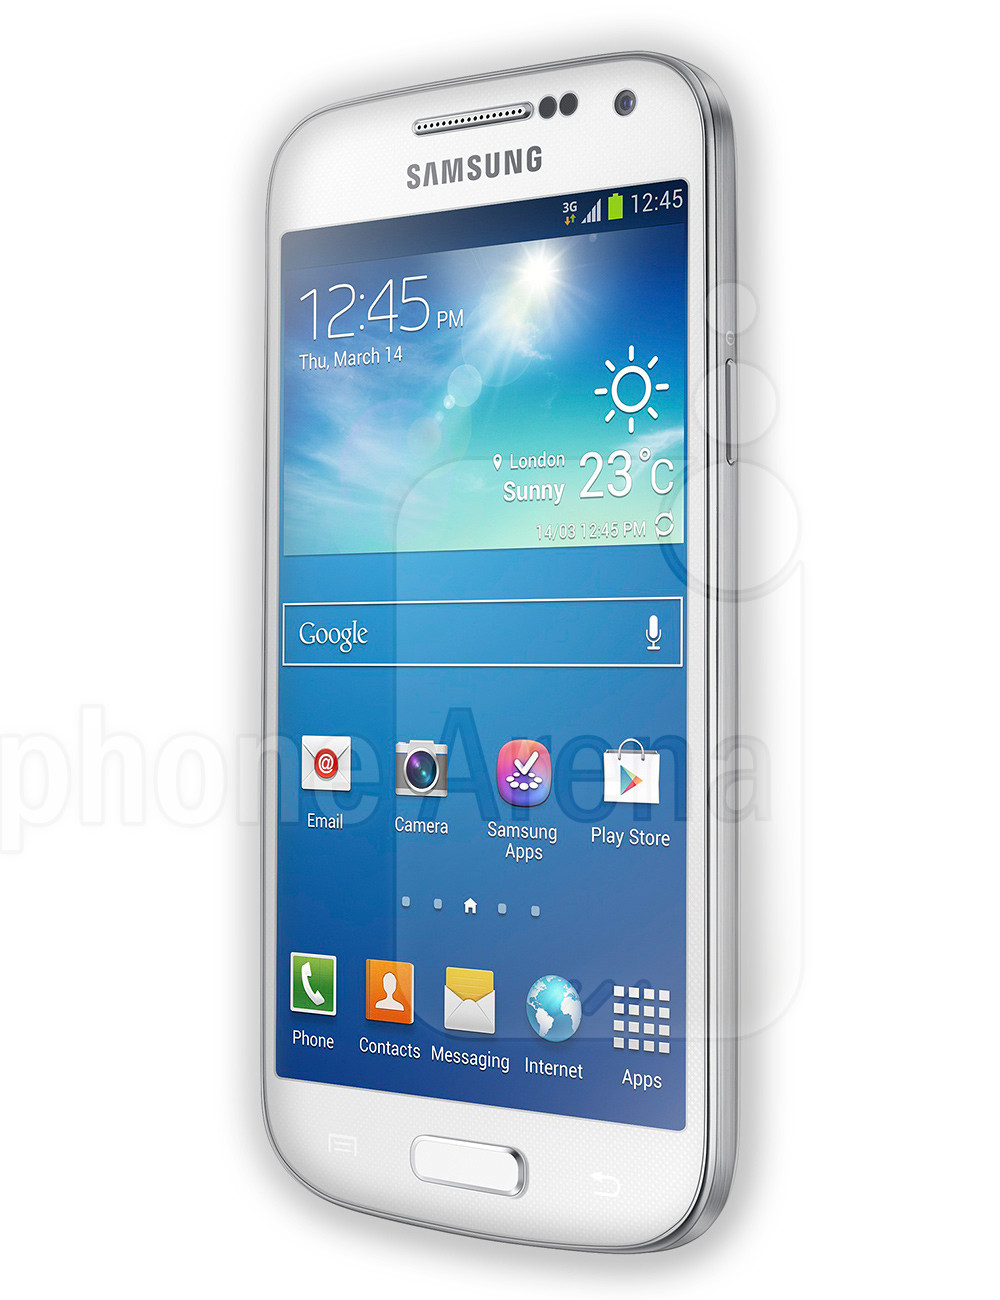 samsung s4 mini review how does it compare sellcell. Black Bedroom Furniture Sets. Home Design Ideas